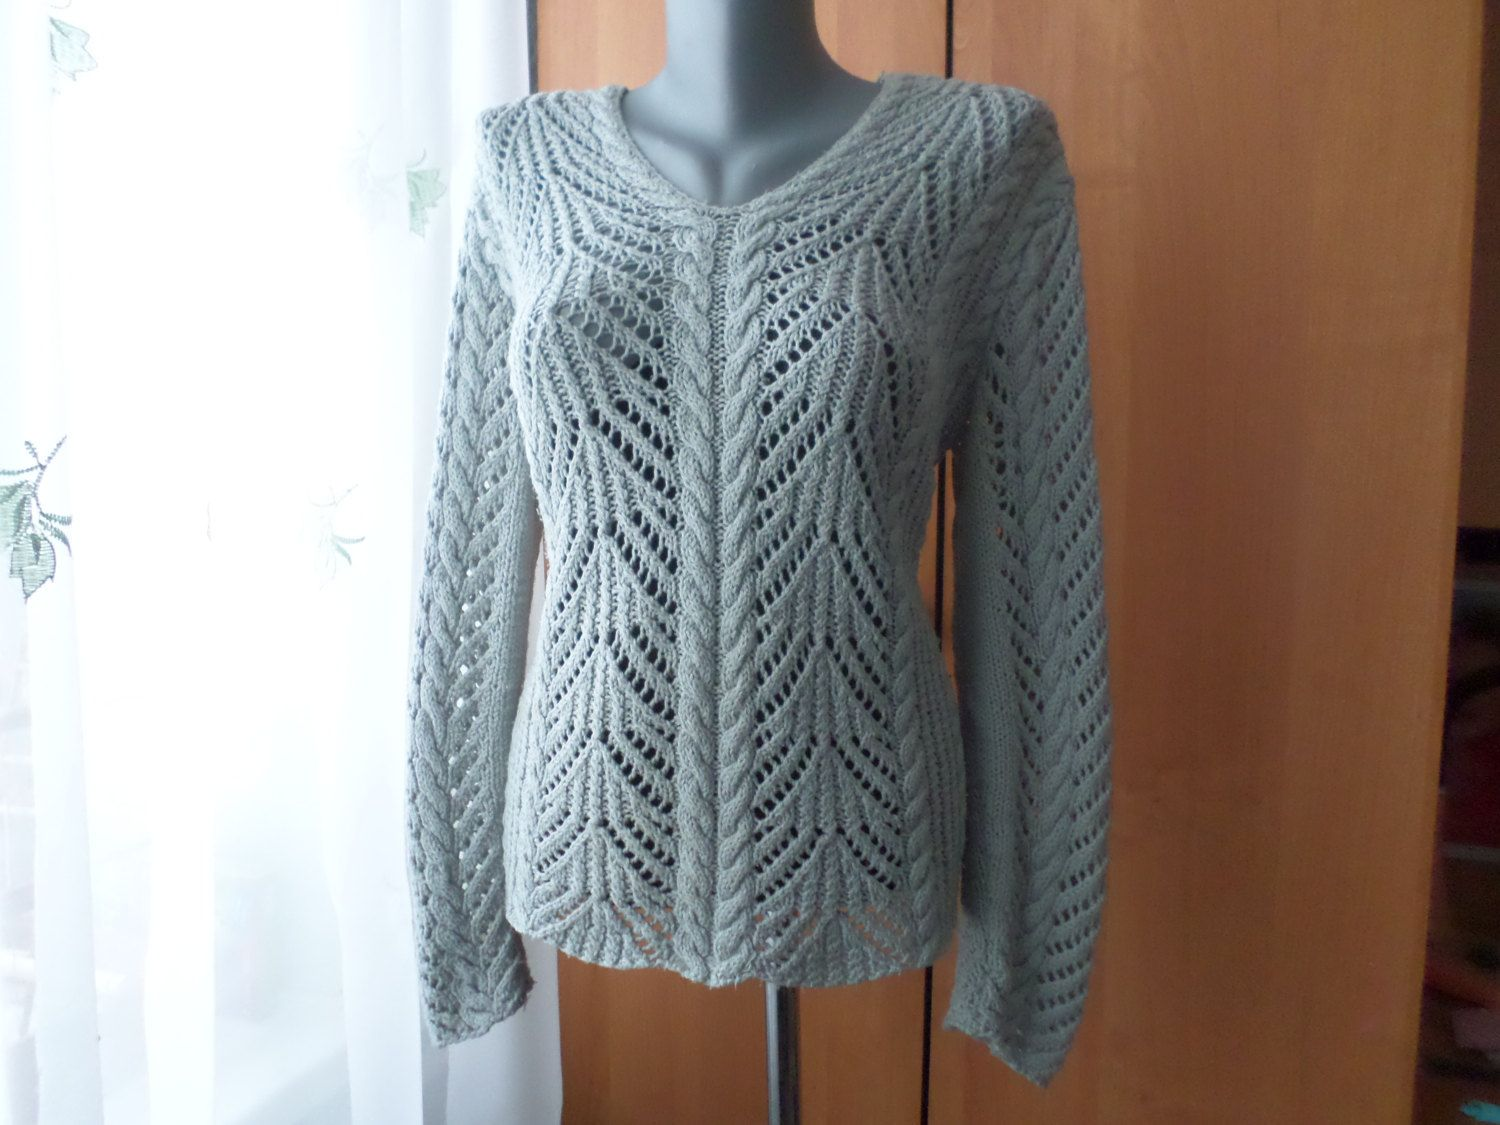 Knit Lace Sweater V Neck Sweater Knit Woman's Сlothing Hand Knit ...